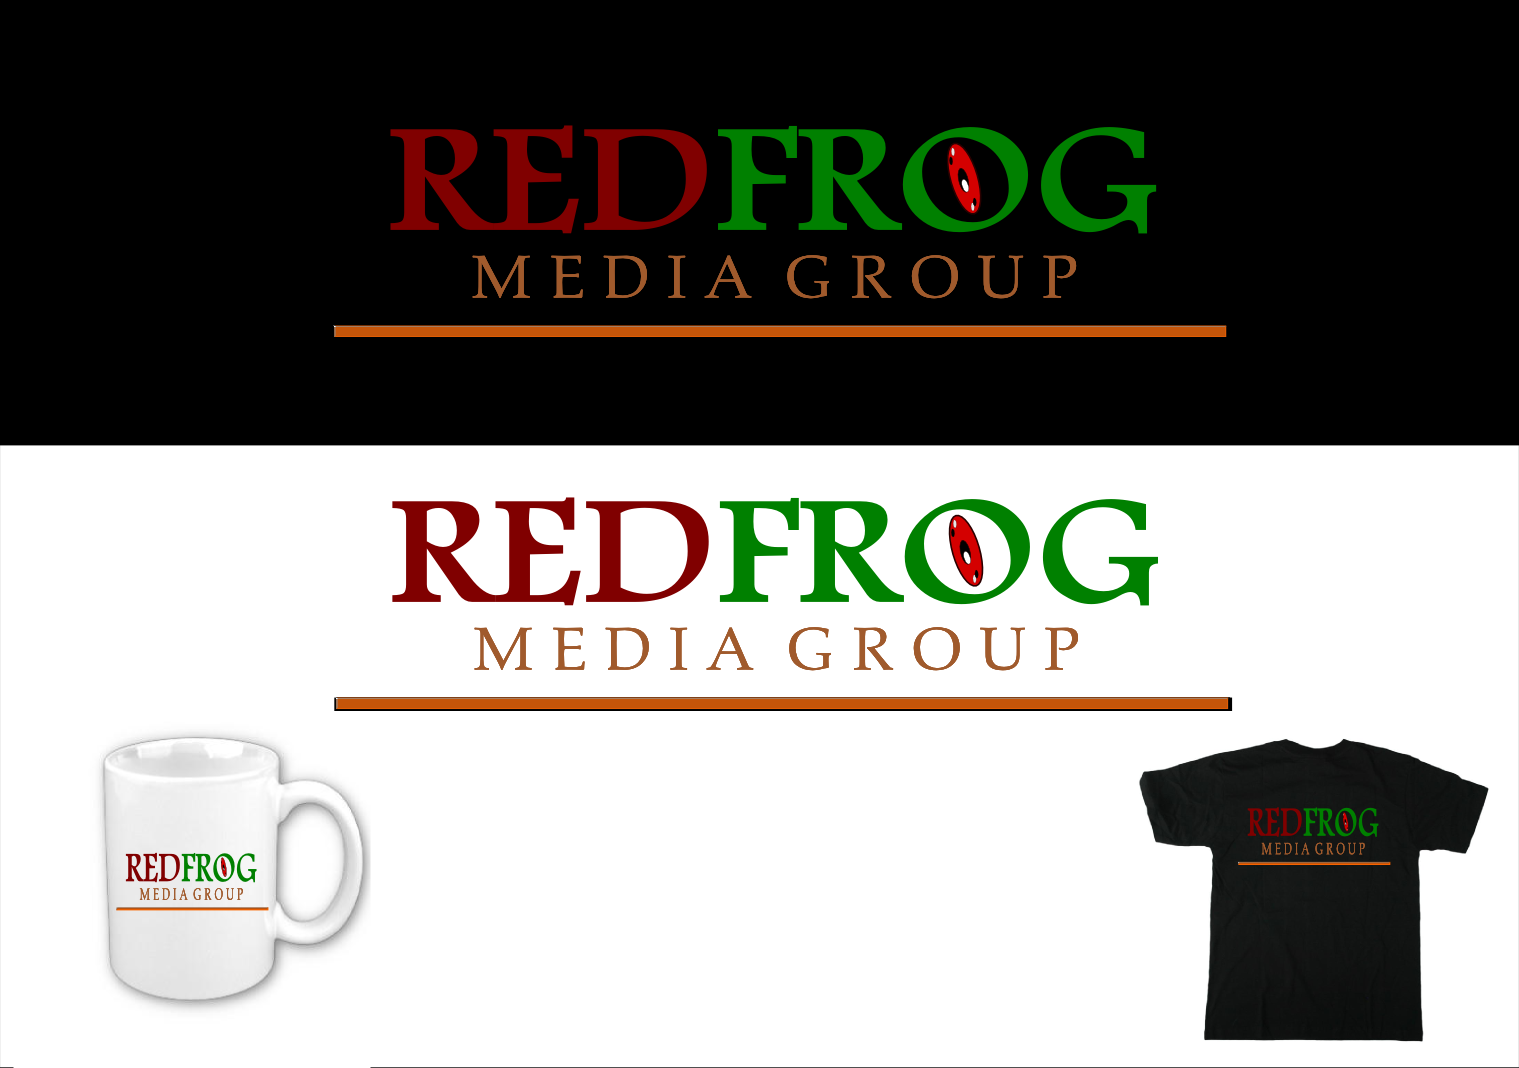 Logo Design by Joseph calunsag Cagaanan - Entry No. 30 in the Logo Design Contest New Logo Design for Red Frog Media Group.